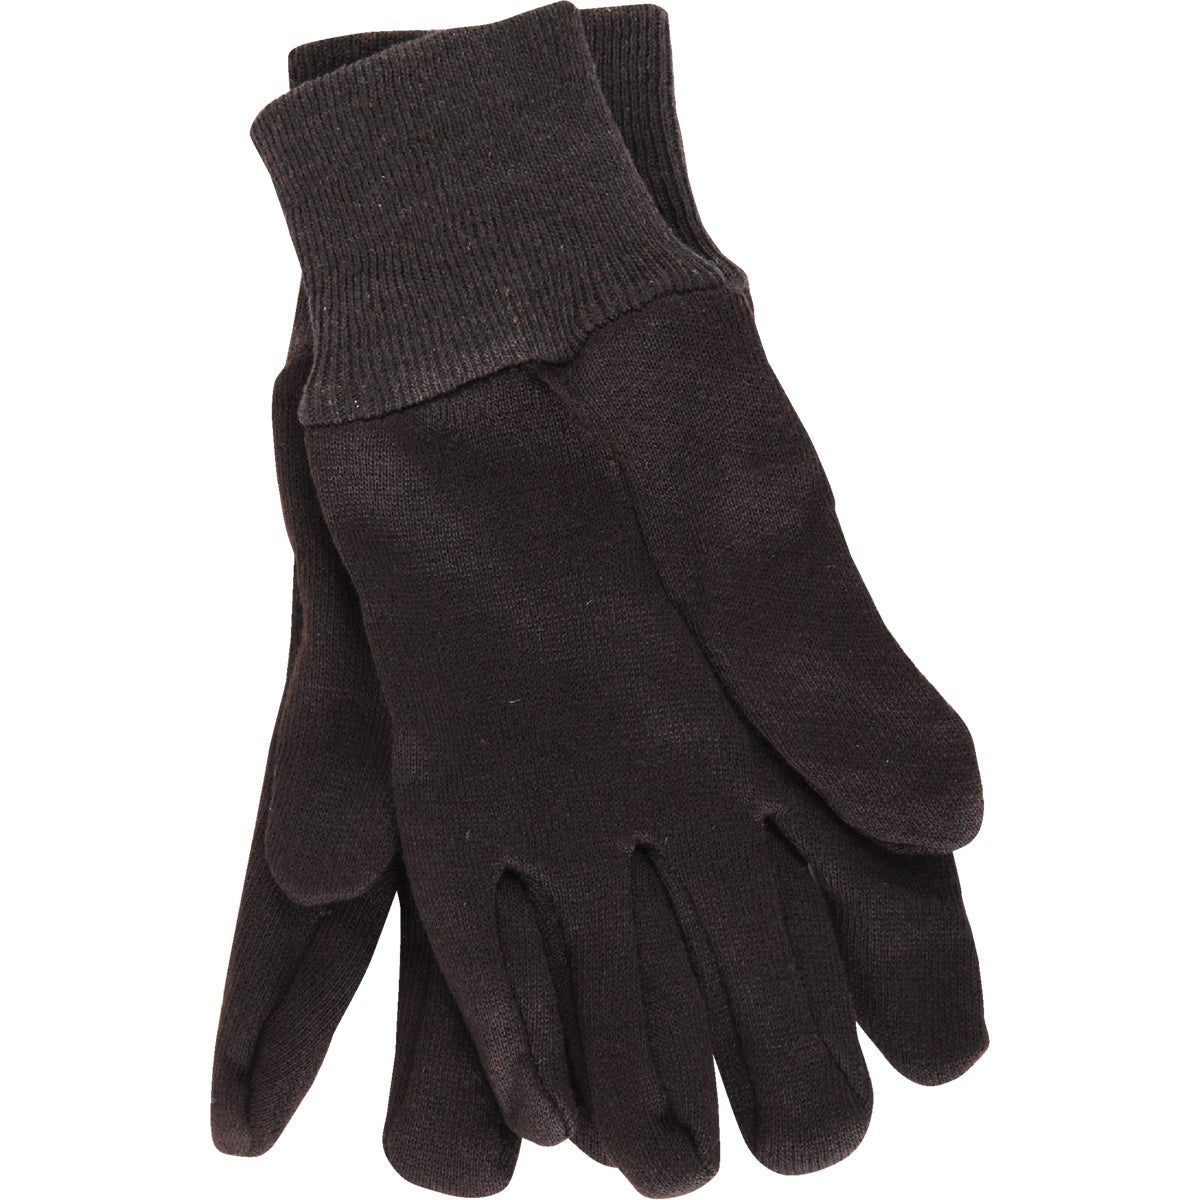 12PK LG BRN JERSEY GLOVE - 750 by West Chester Incom